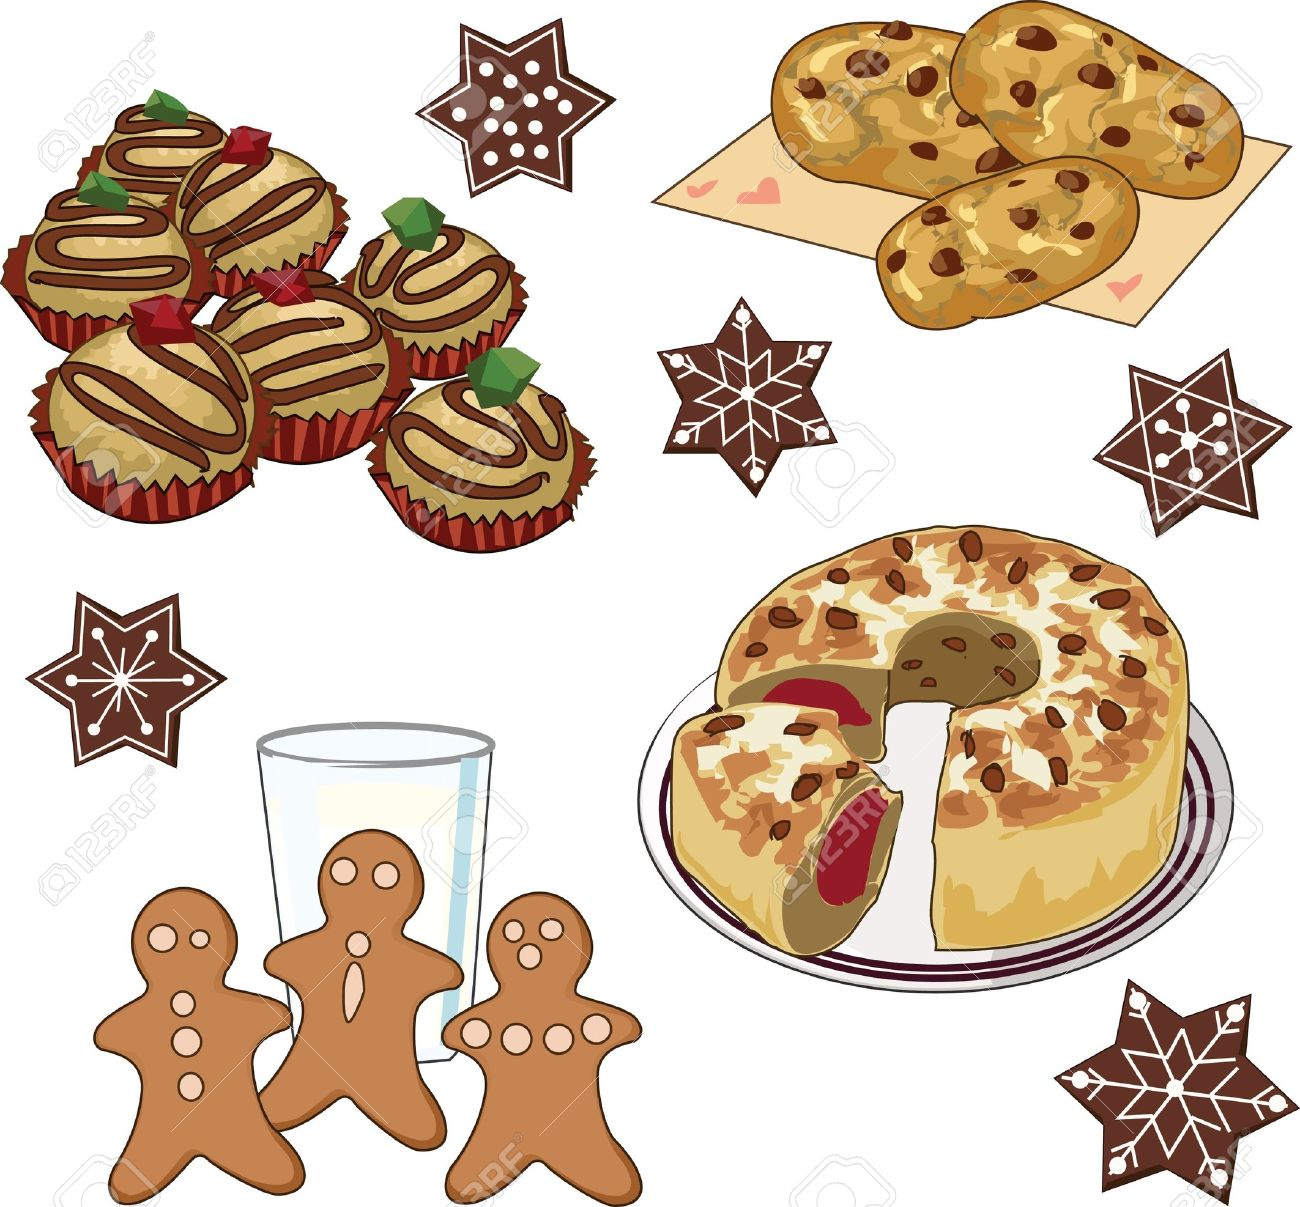 Clipart cakes and pies clip art stock Cake Pie Cliparts - Cliparts Zone clip art stock